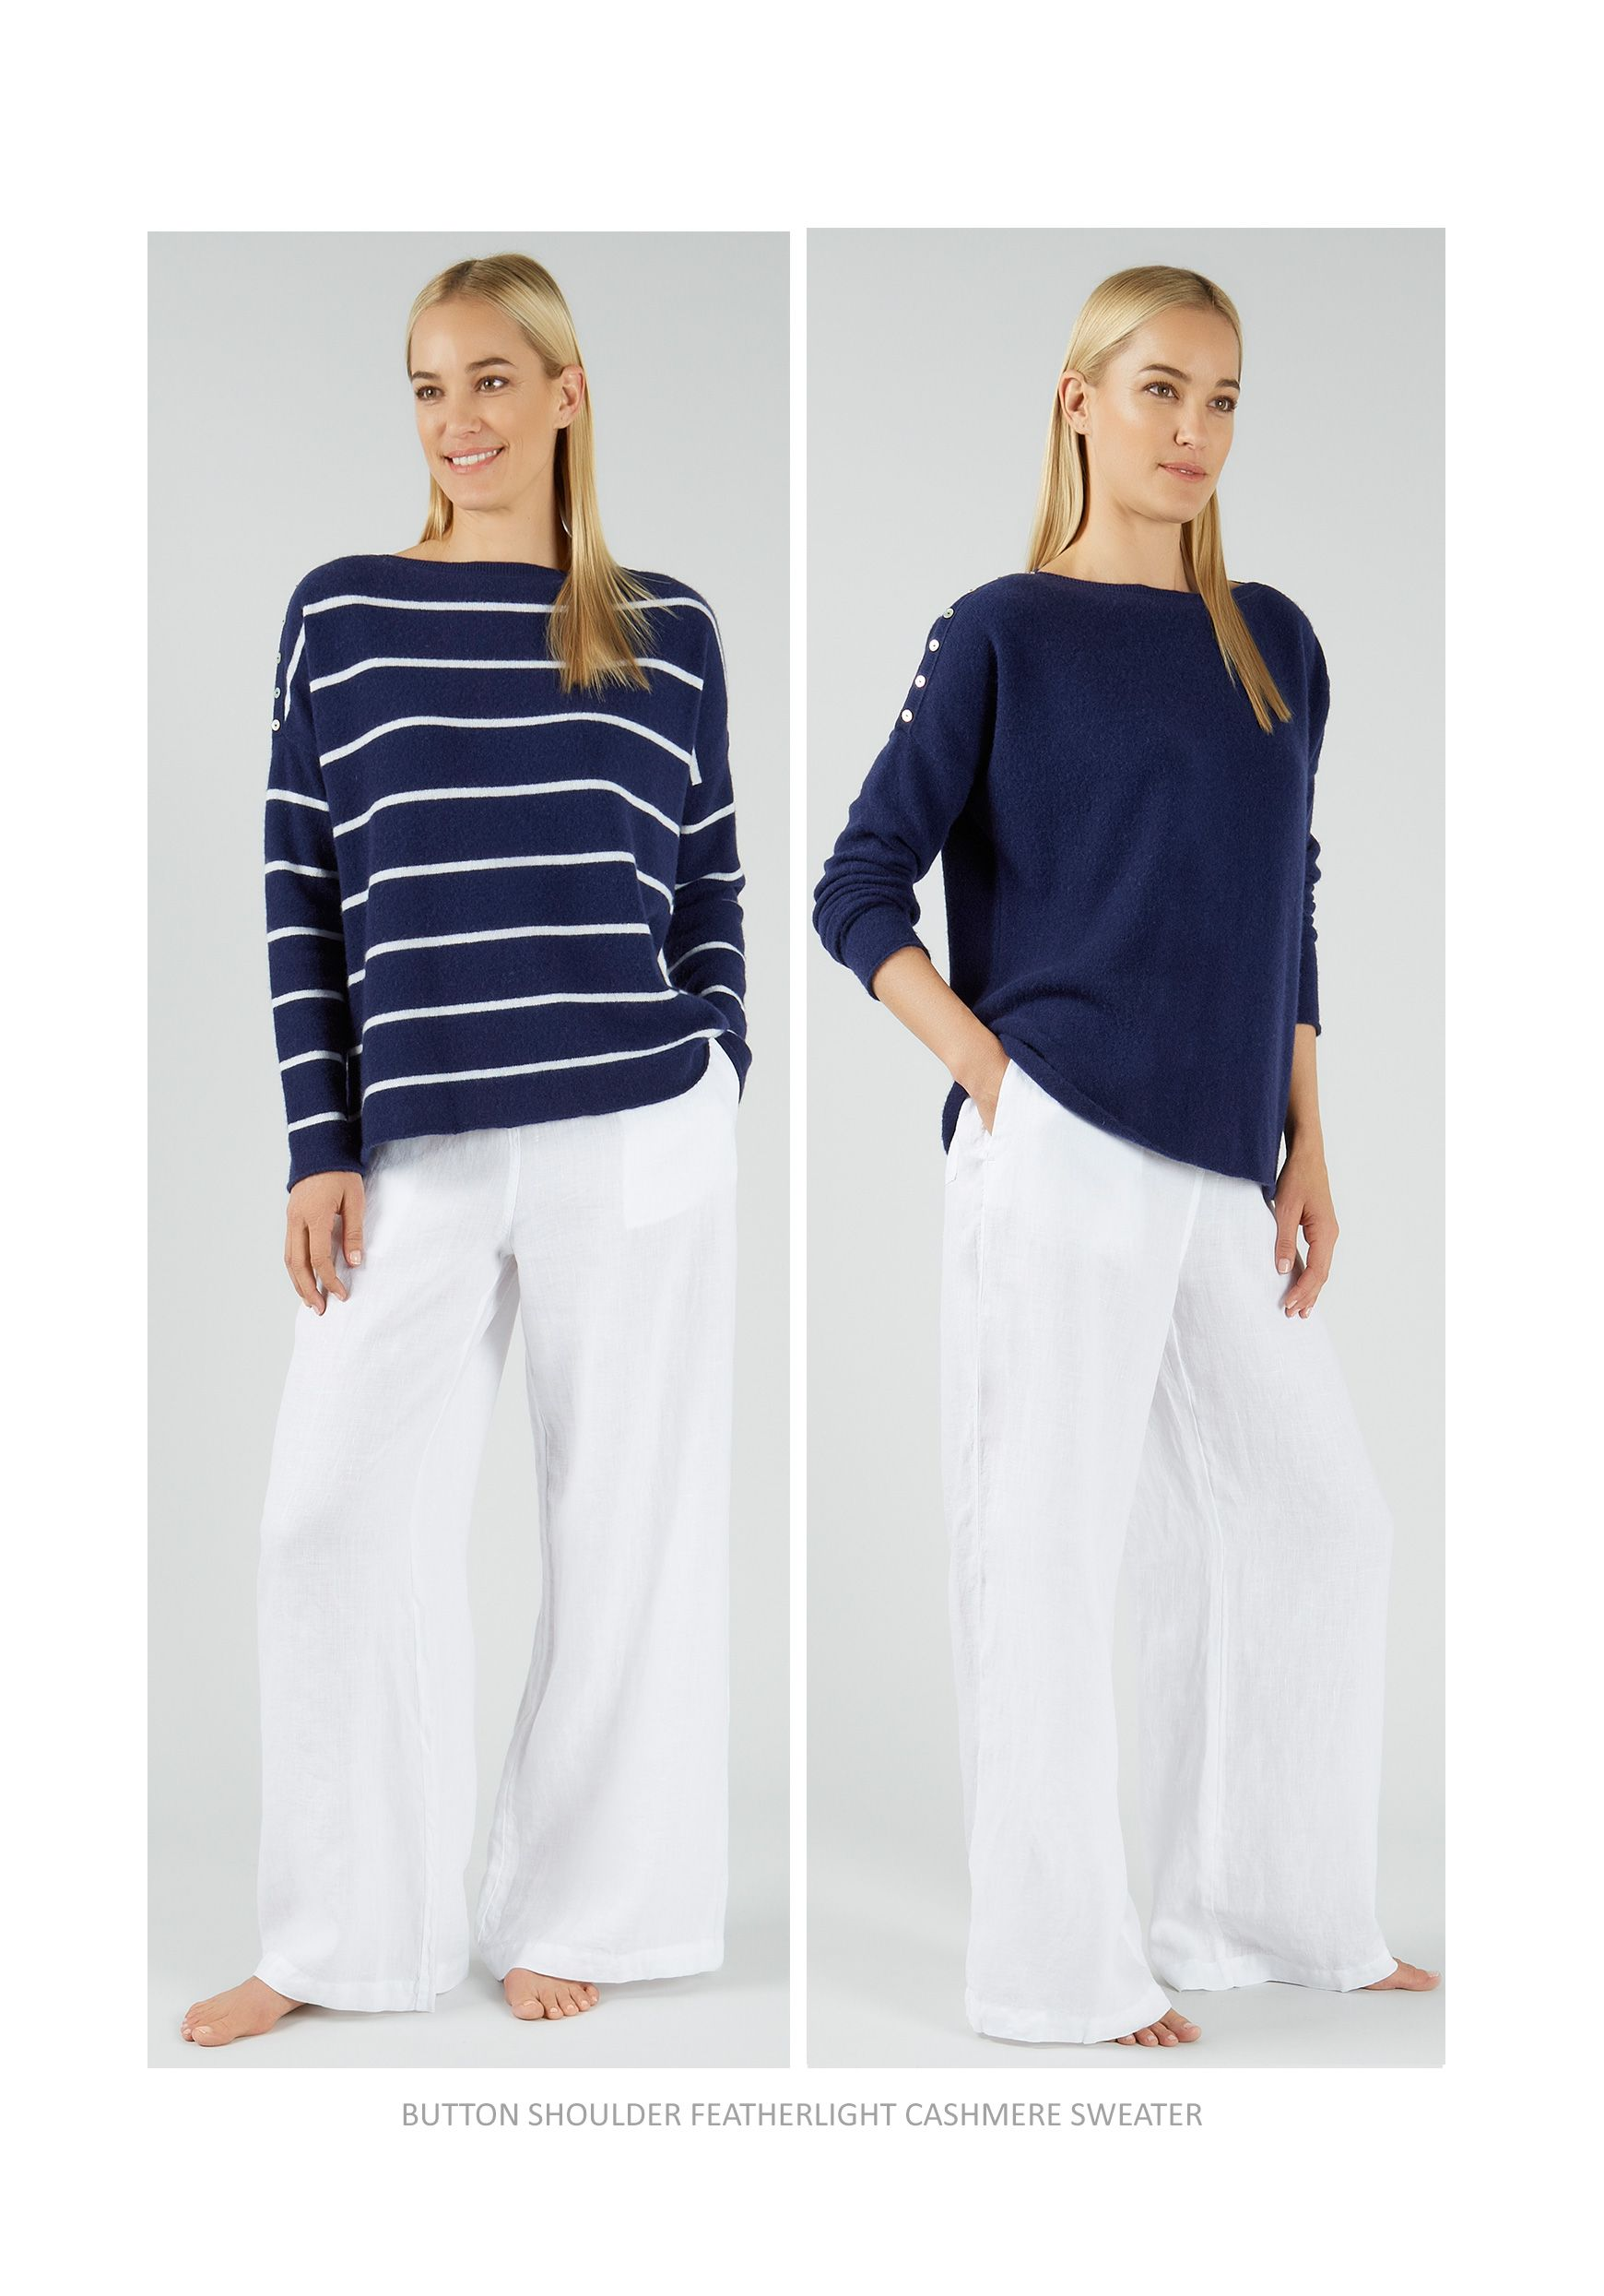 Button Shoulder Featherlight Cashmere Sweater in nautical stripes ...